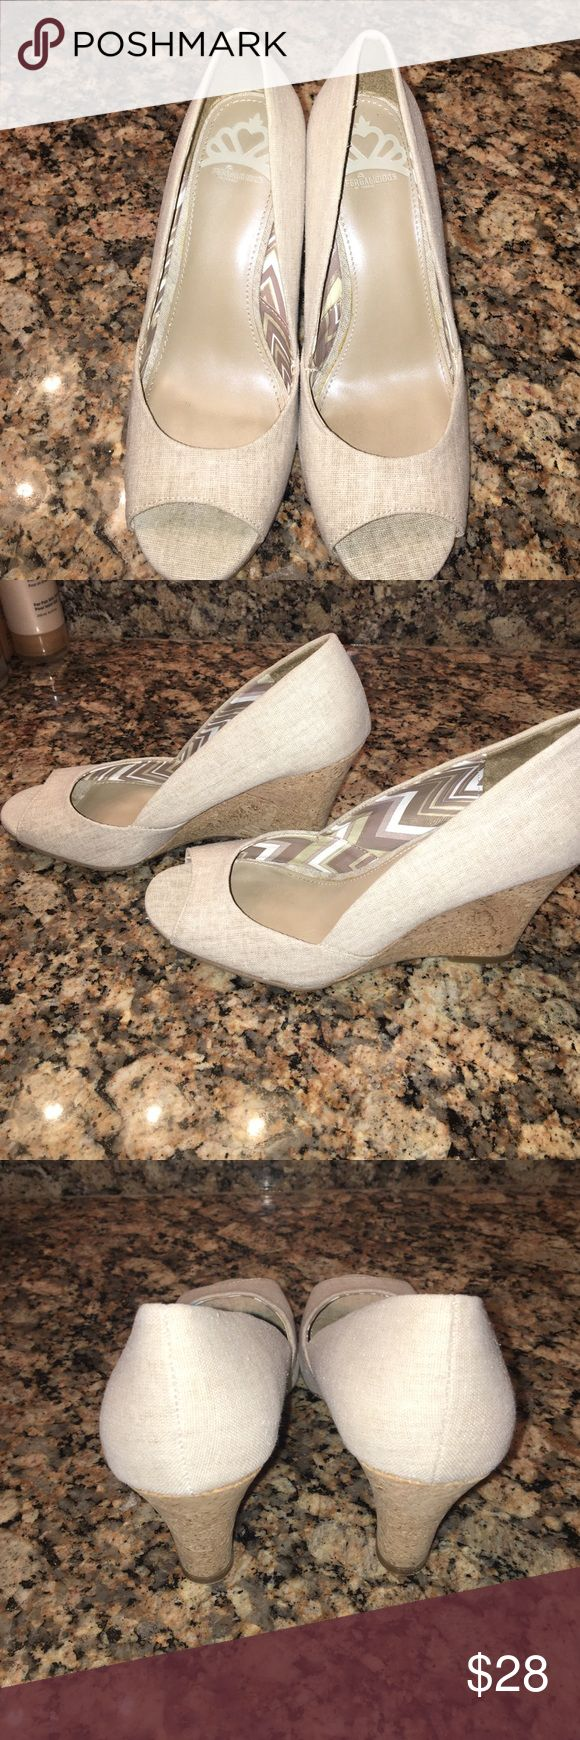 FERGALICIOUS BY FERGIE SHOES FERGALICIOUS by FERGIE Shoes in size 7, like new in great condition. Fergalicious Shoes Heels